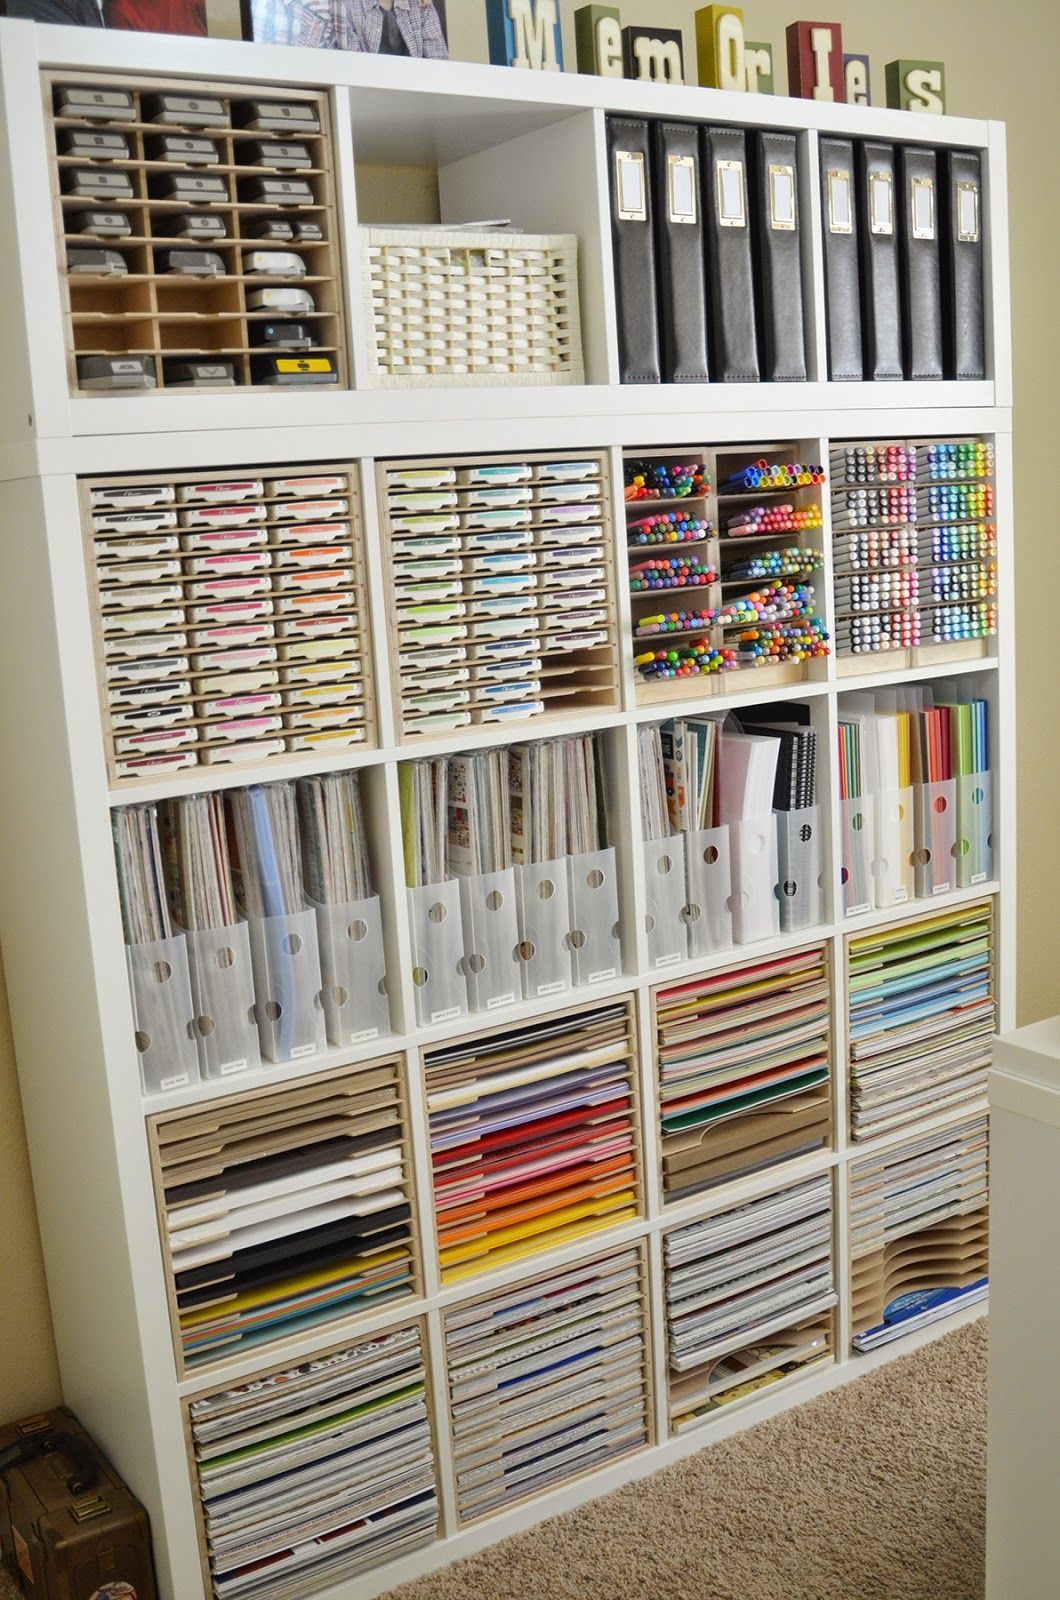 Store Room Design Ideas Part - 30: Paper Craft Storage In IKEA Shelving. Storage Room OrganizationCraftroom Storage  IdeasScrapbook ...